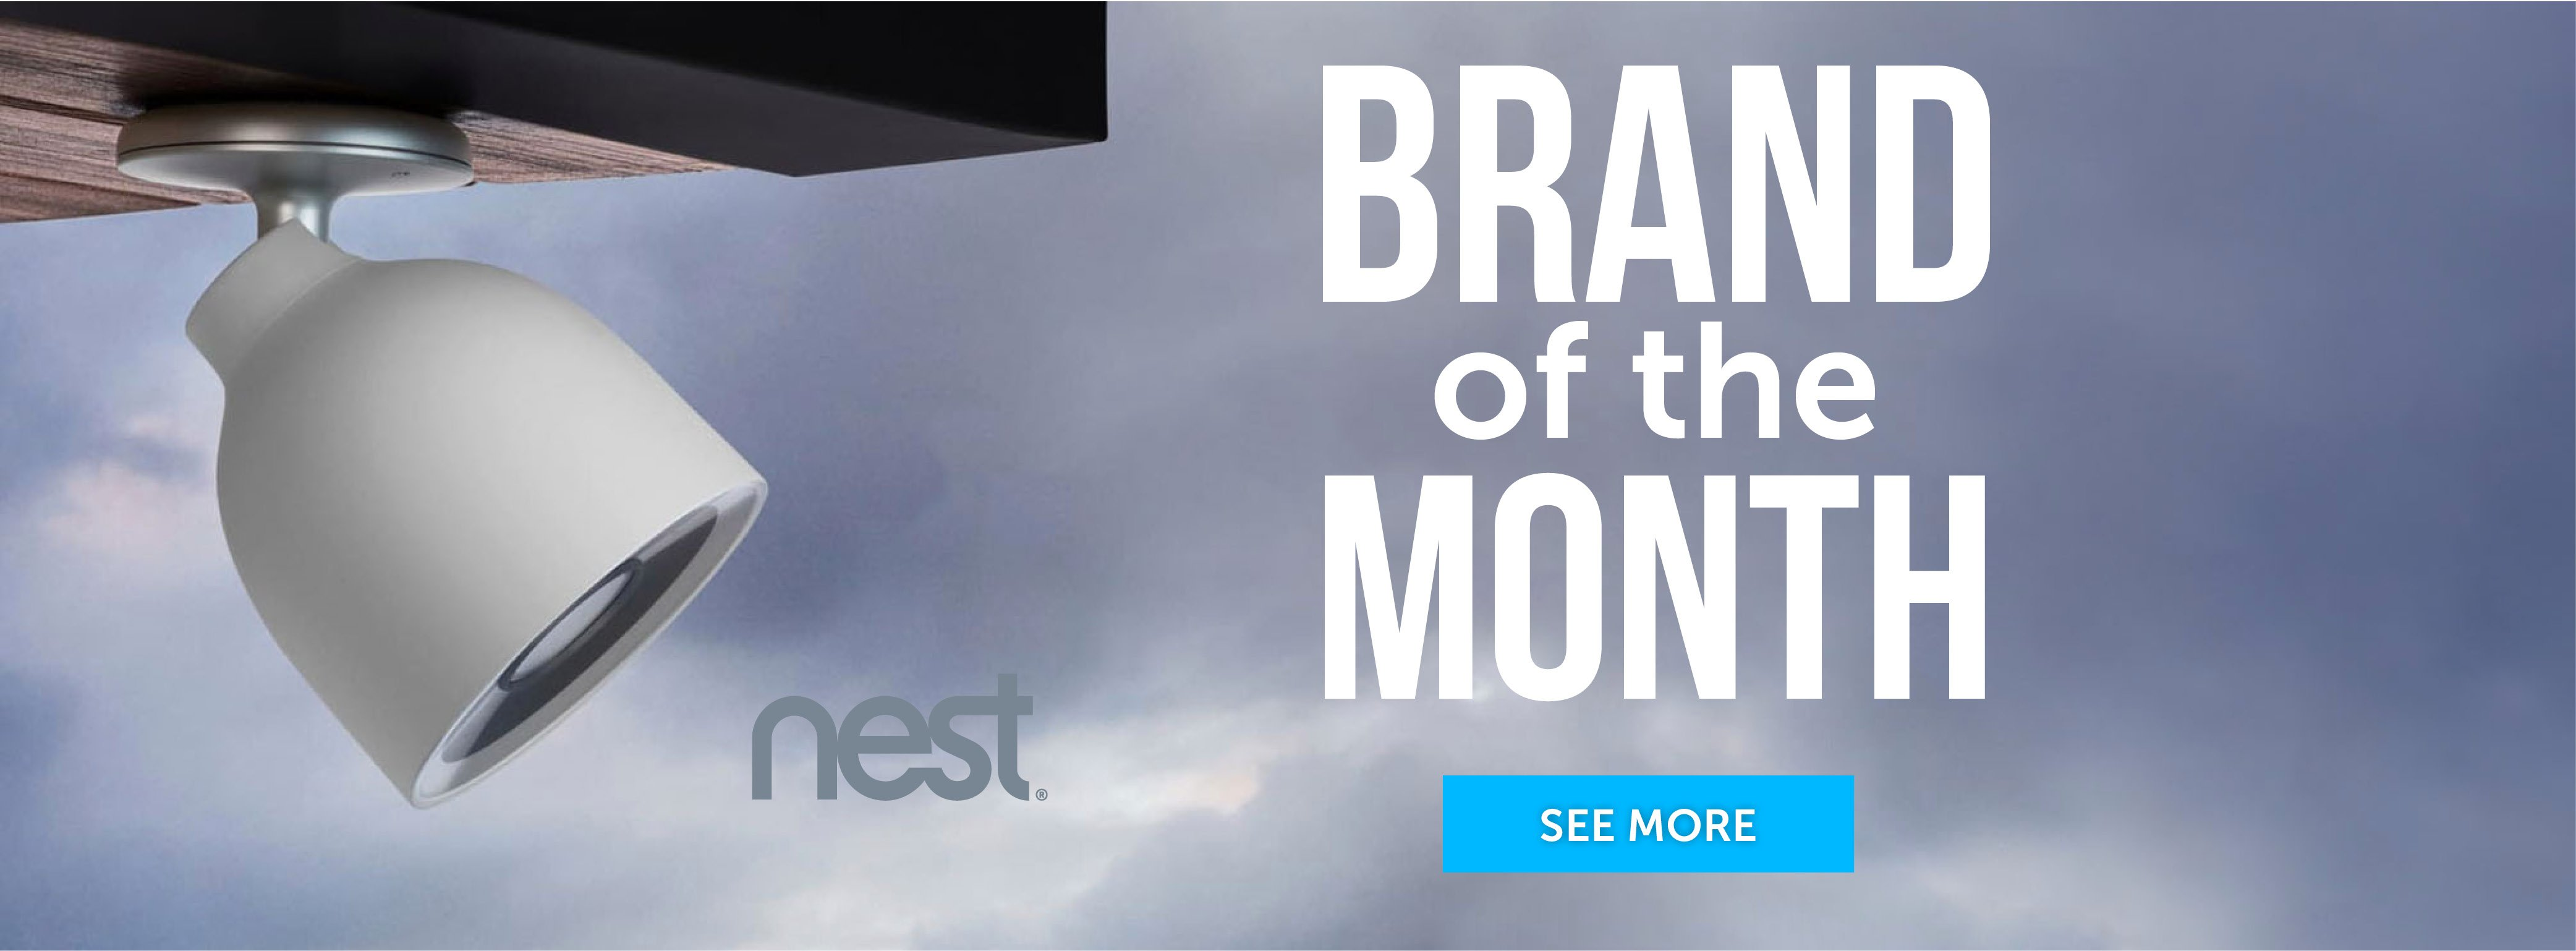 Brand of the Month - NEST